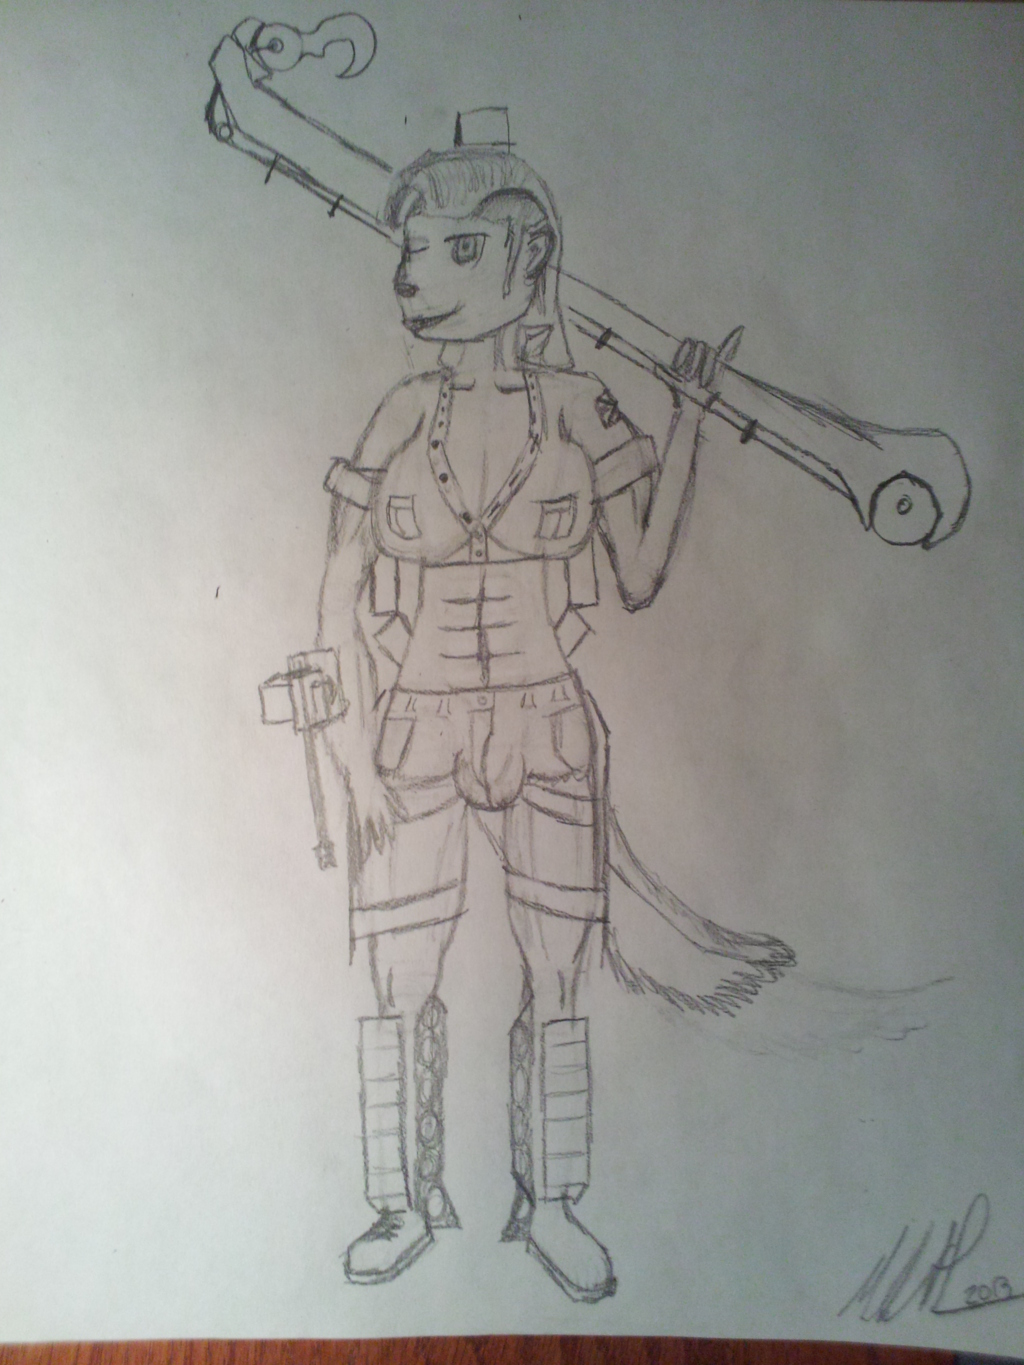 A Friend's Character